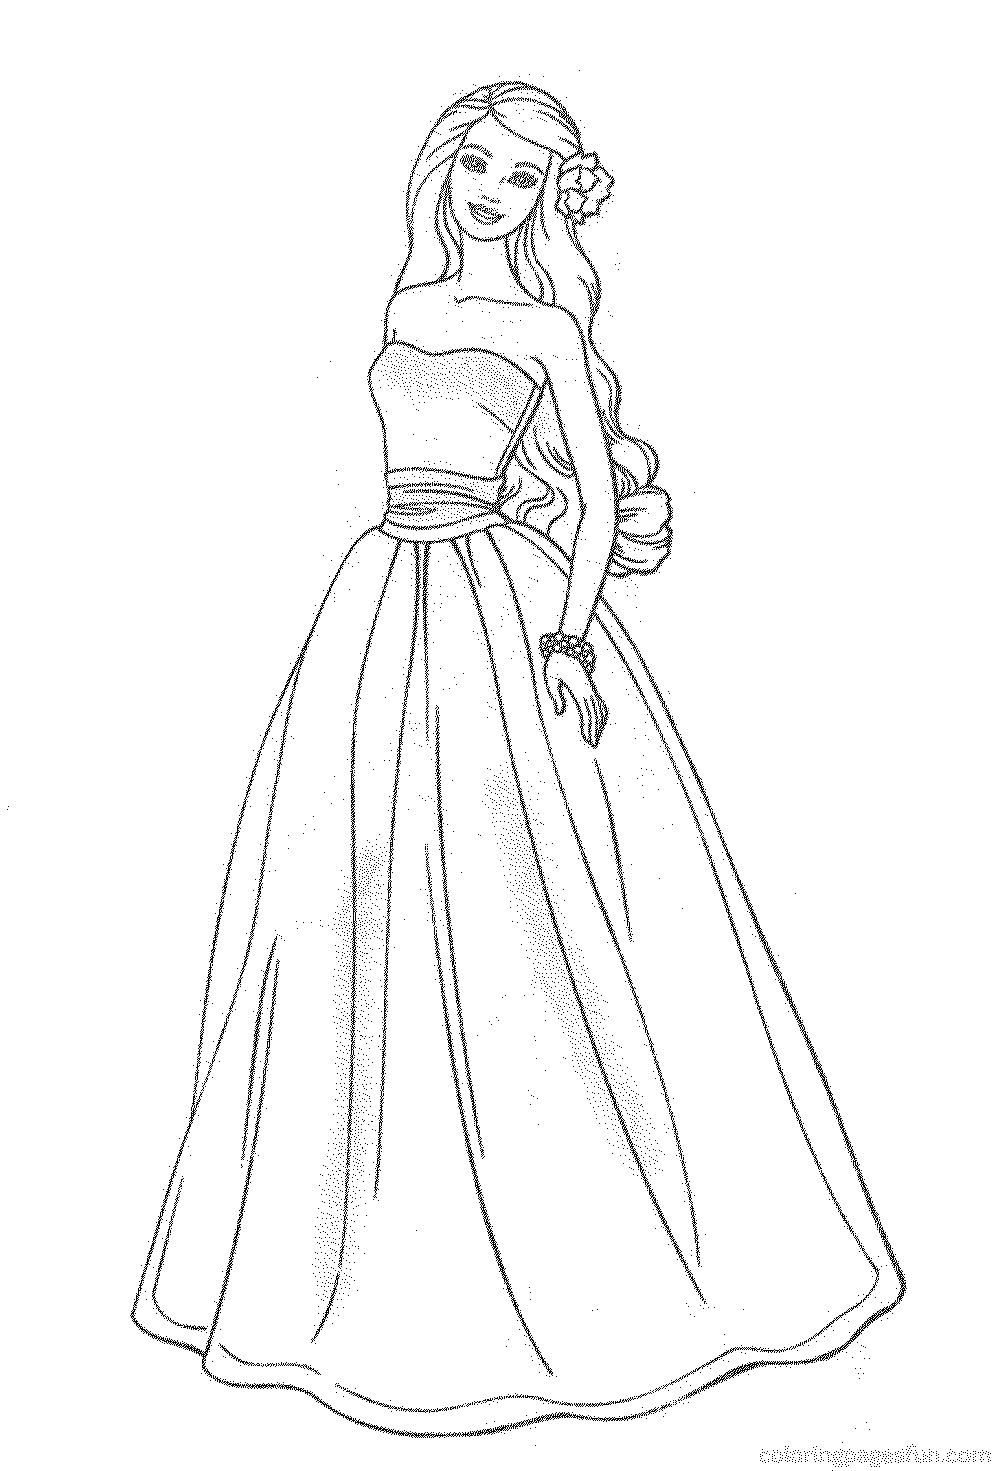 barbie-free-coloring-pages | | BestAppsForKids.com